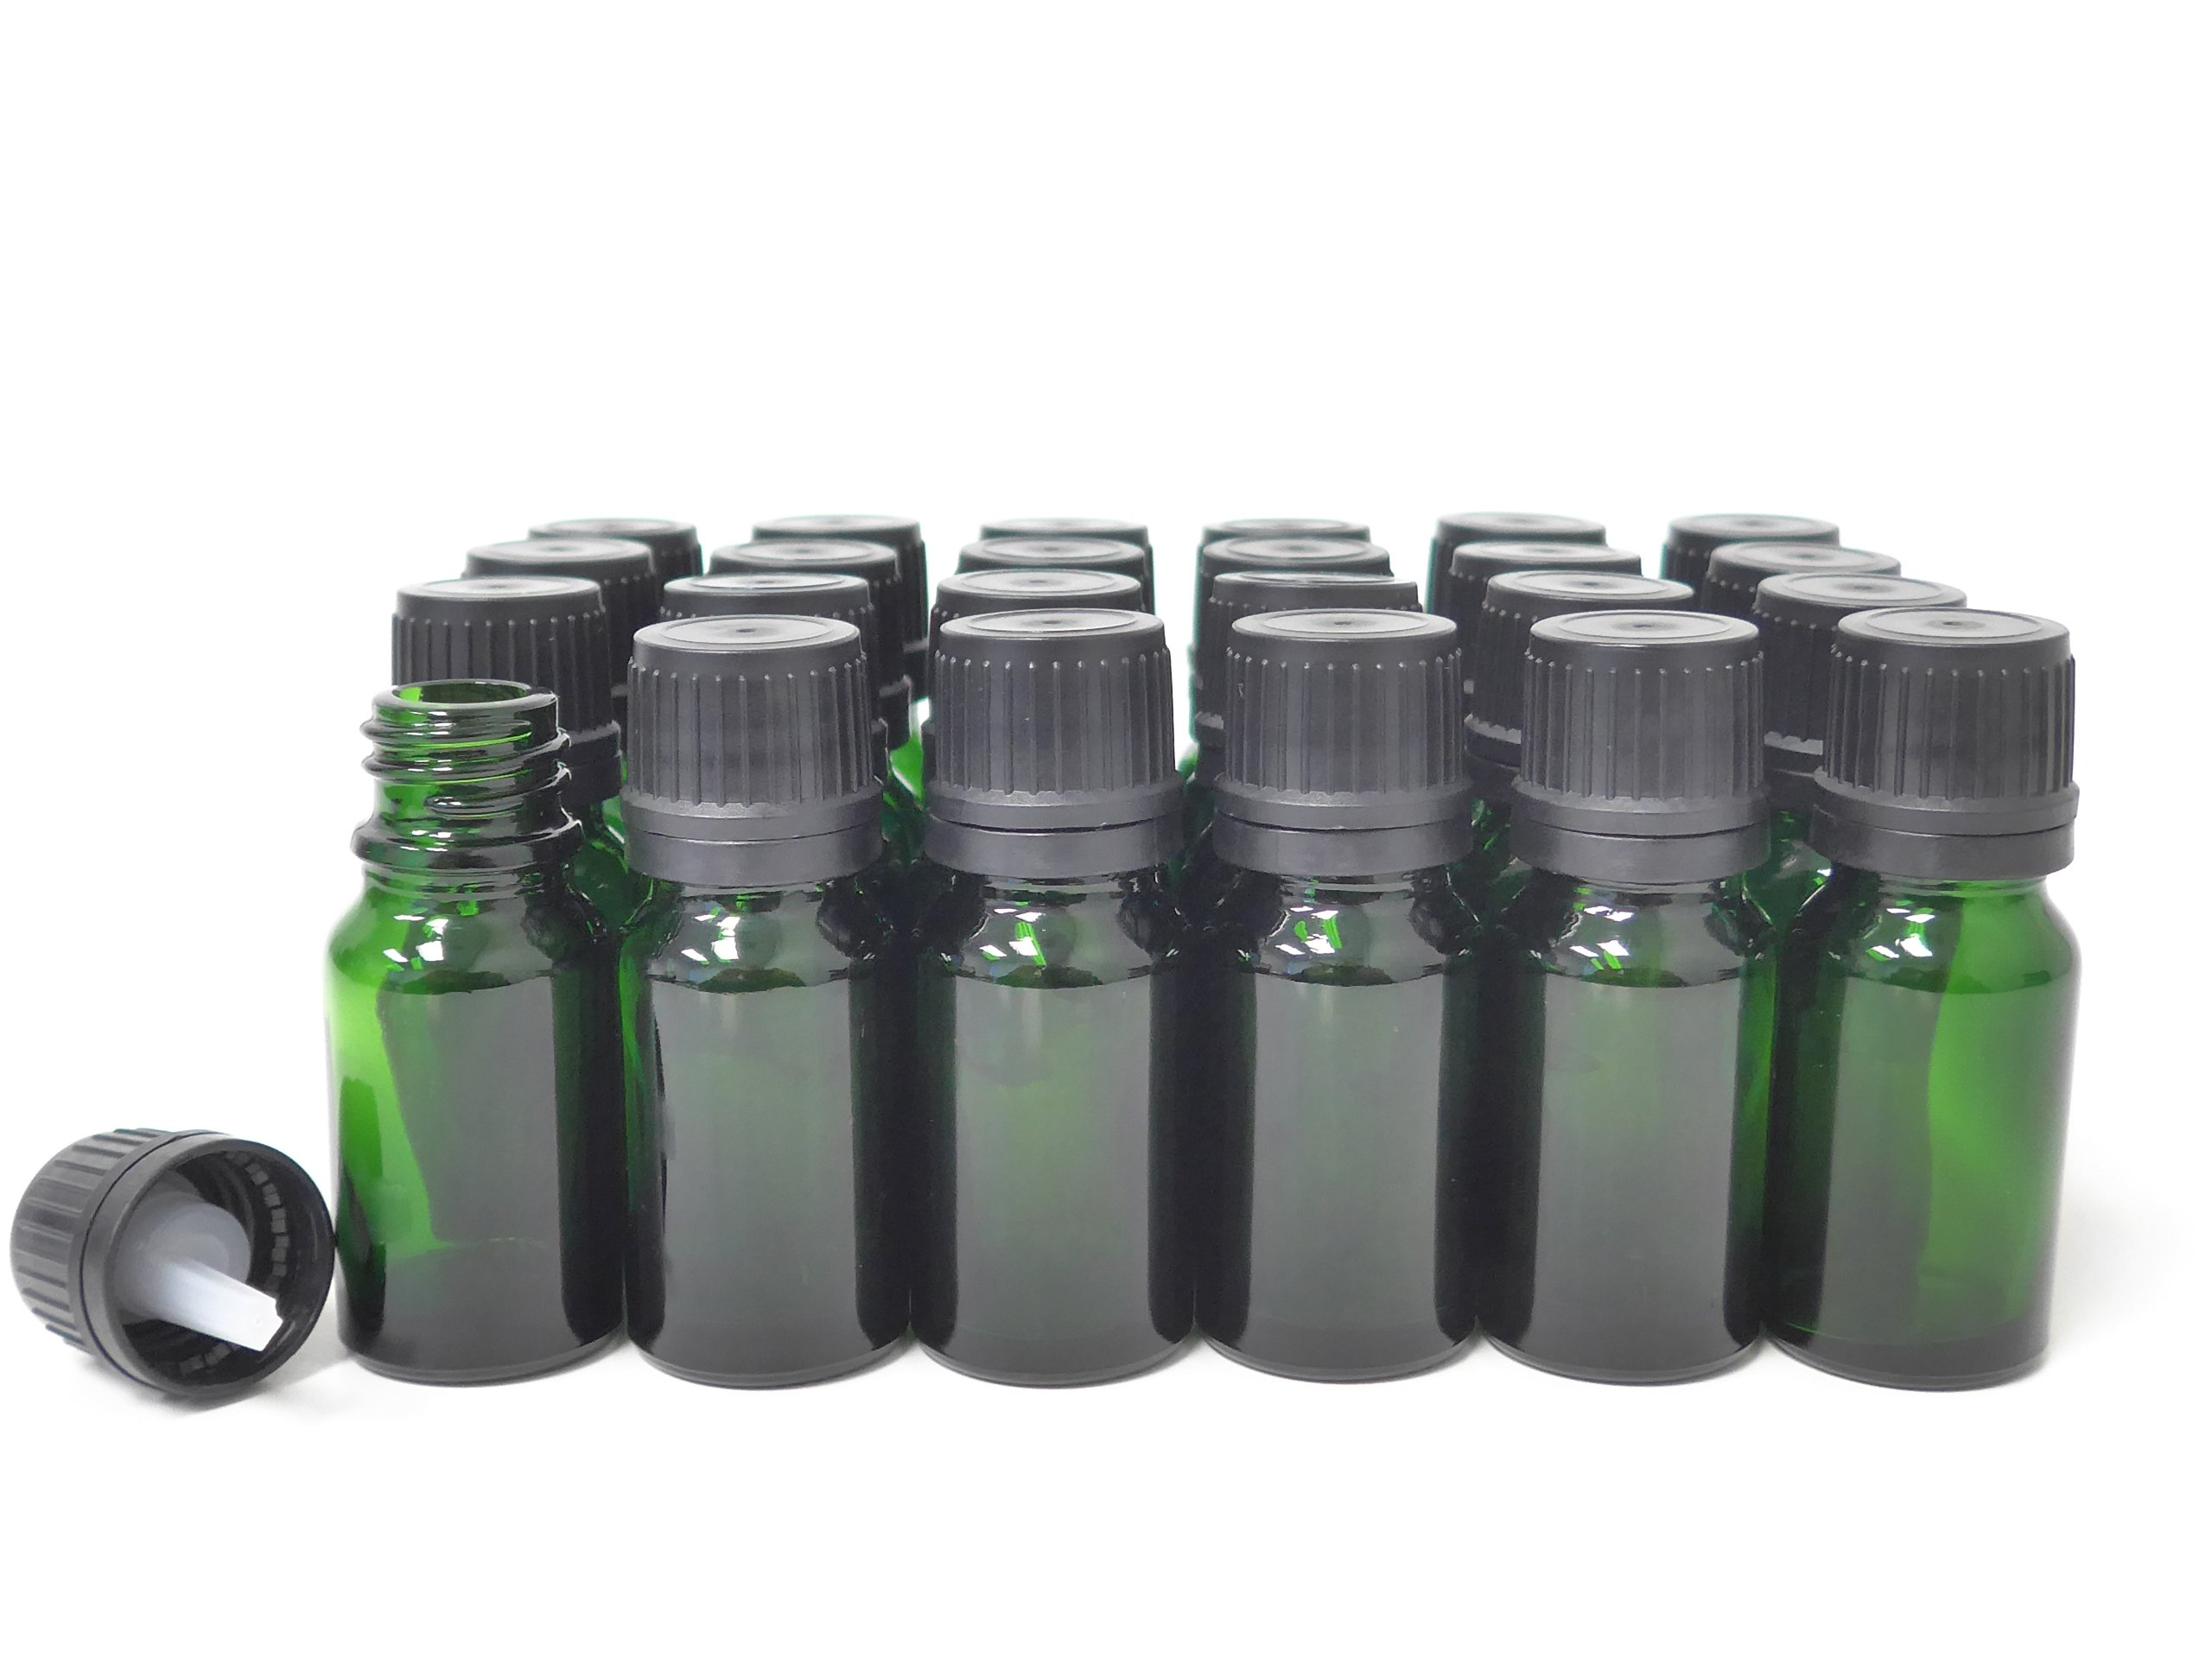 ljdeals 10ml Green Essential Oil Bottle with Euro Dropper Black Cap Glass Bottles Pack of 24